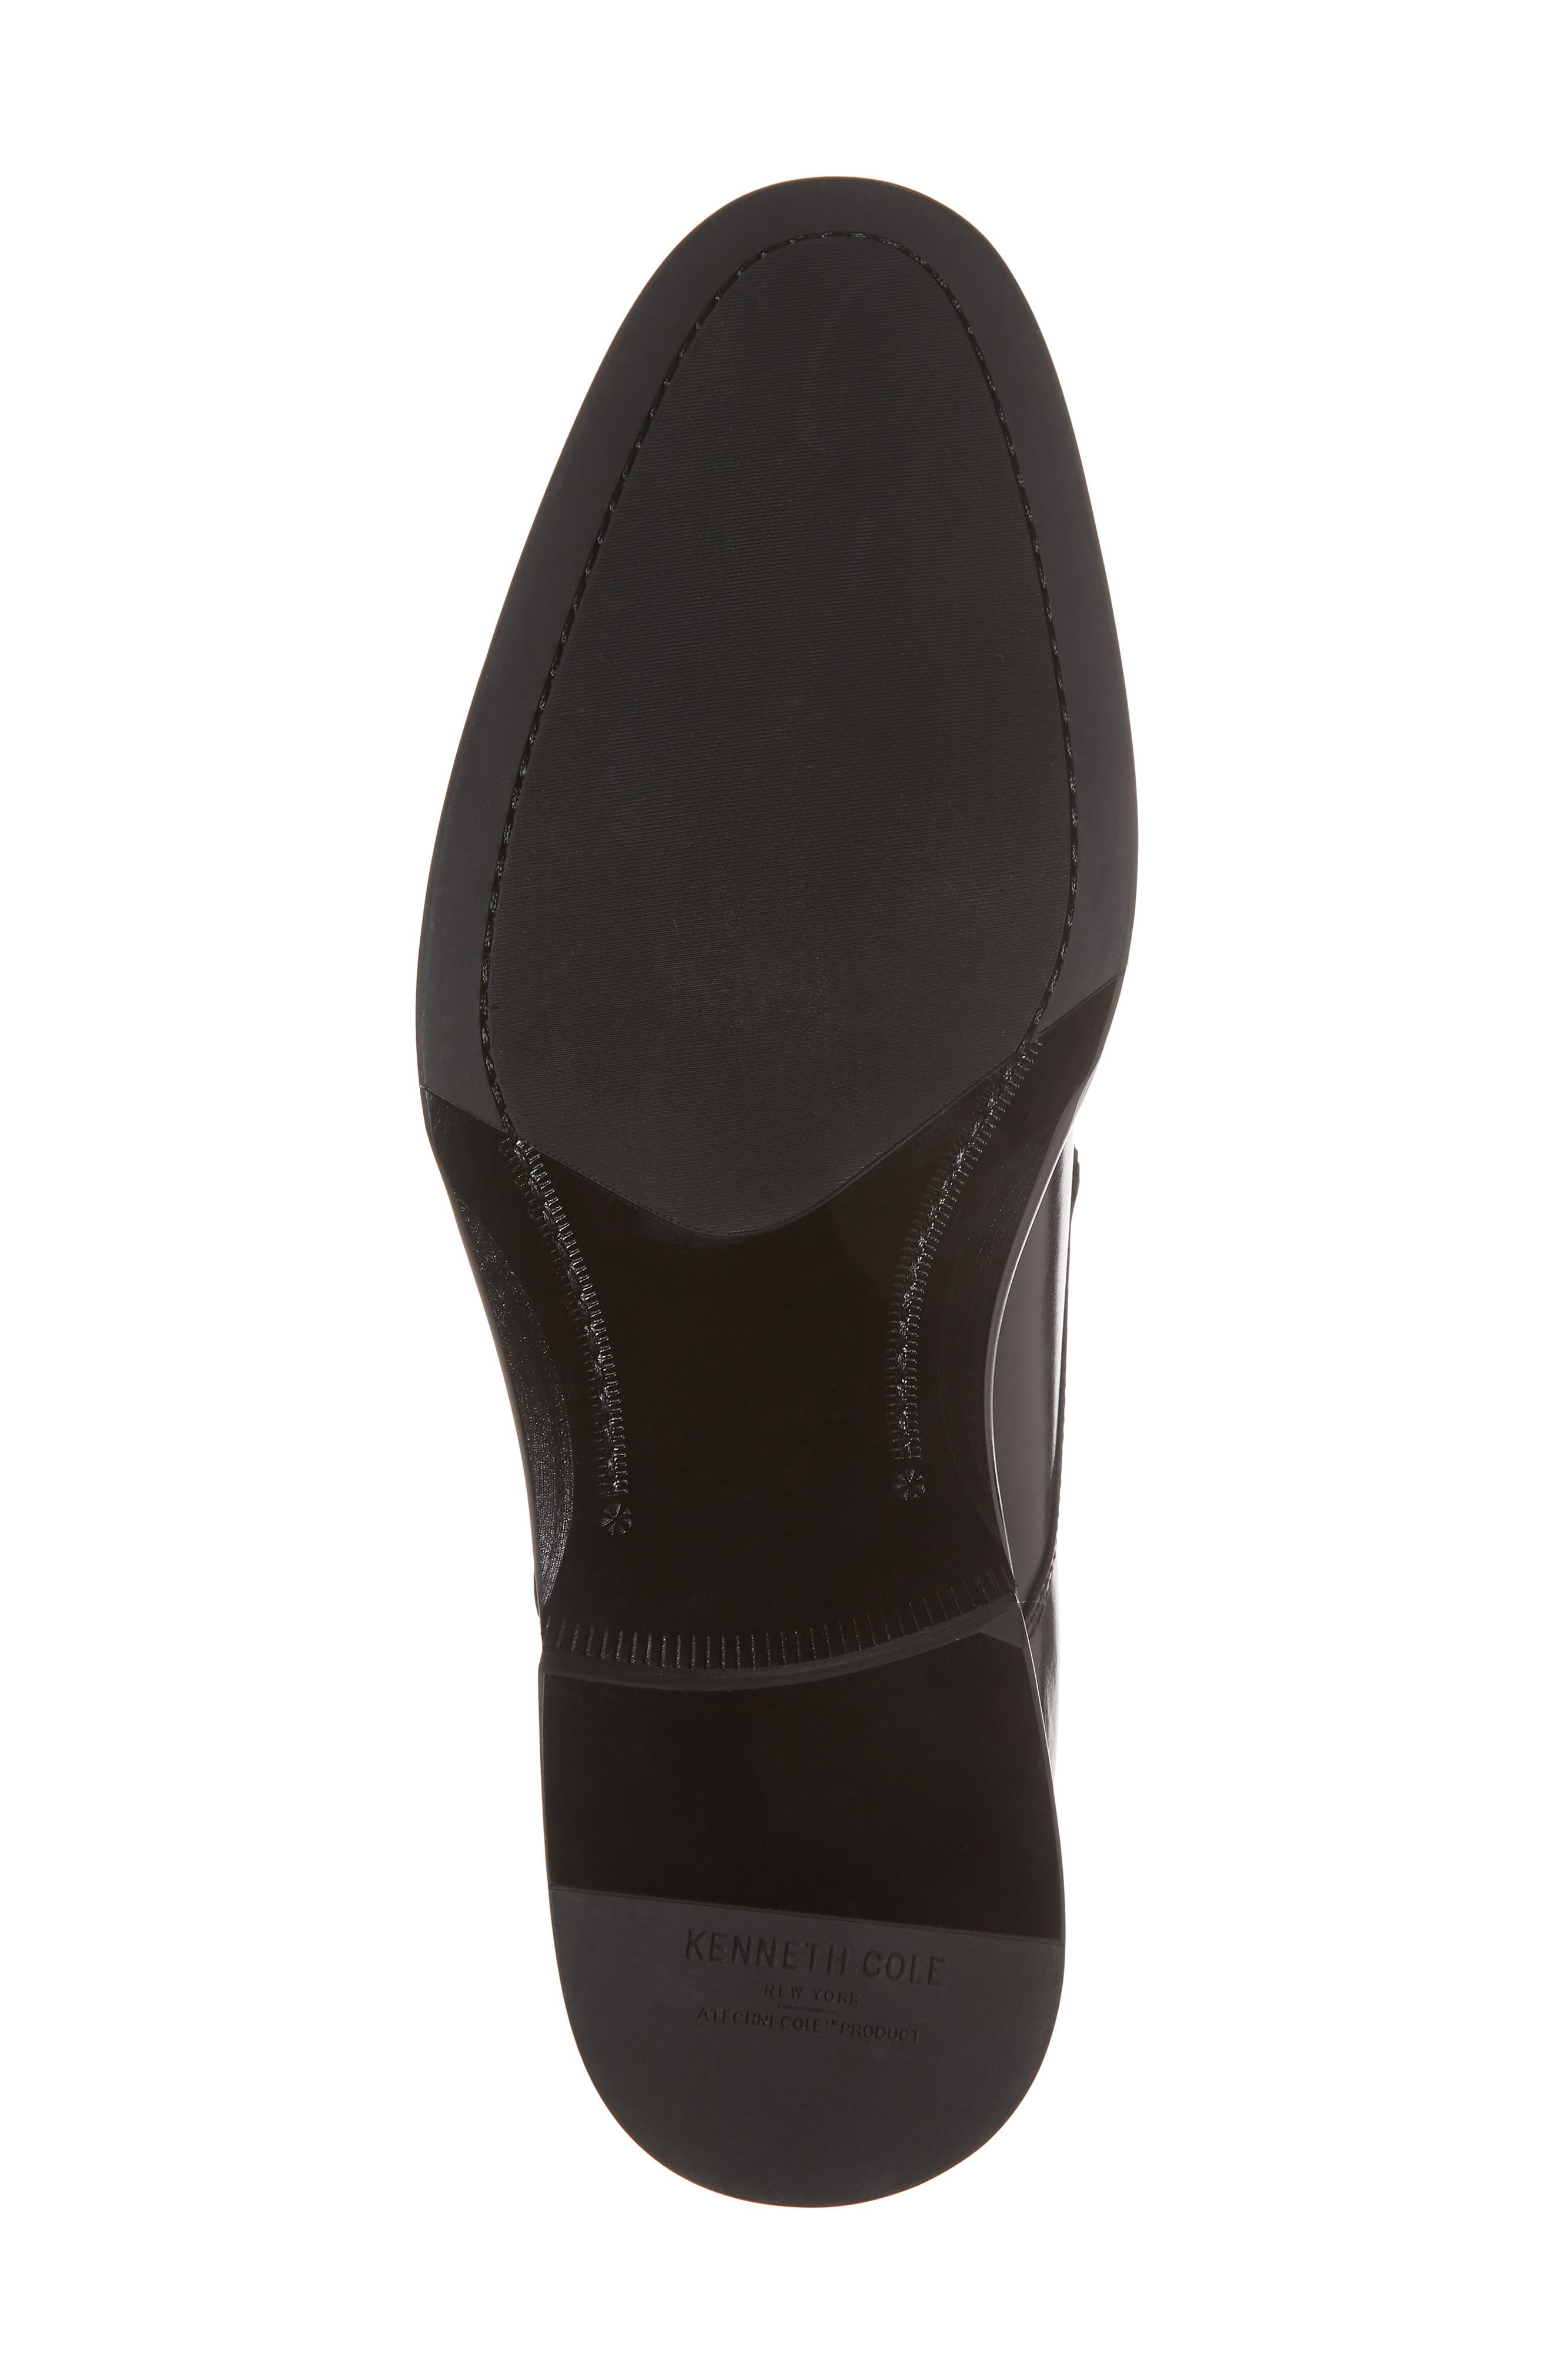 KENNETH COLE NEW YORK, Tully Apron Toe Derby, Alternate thumbnail 6, color, BLACK LEATHER